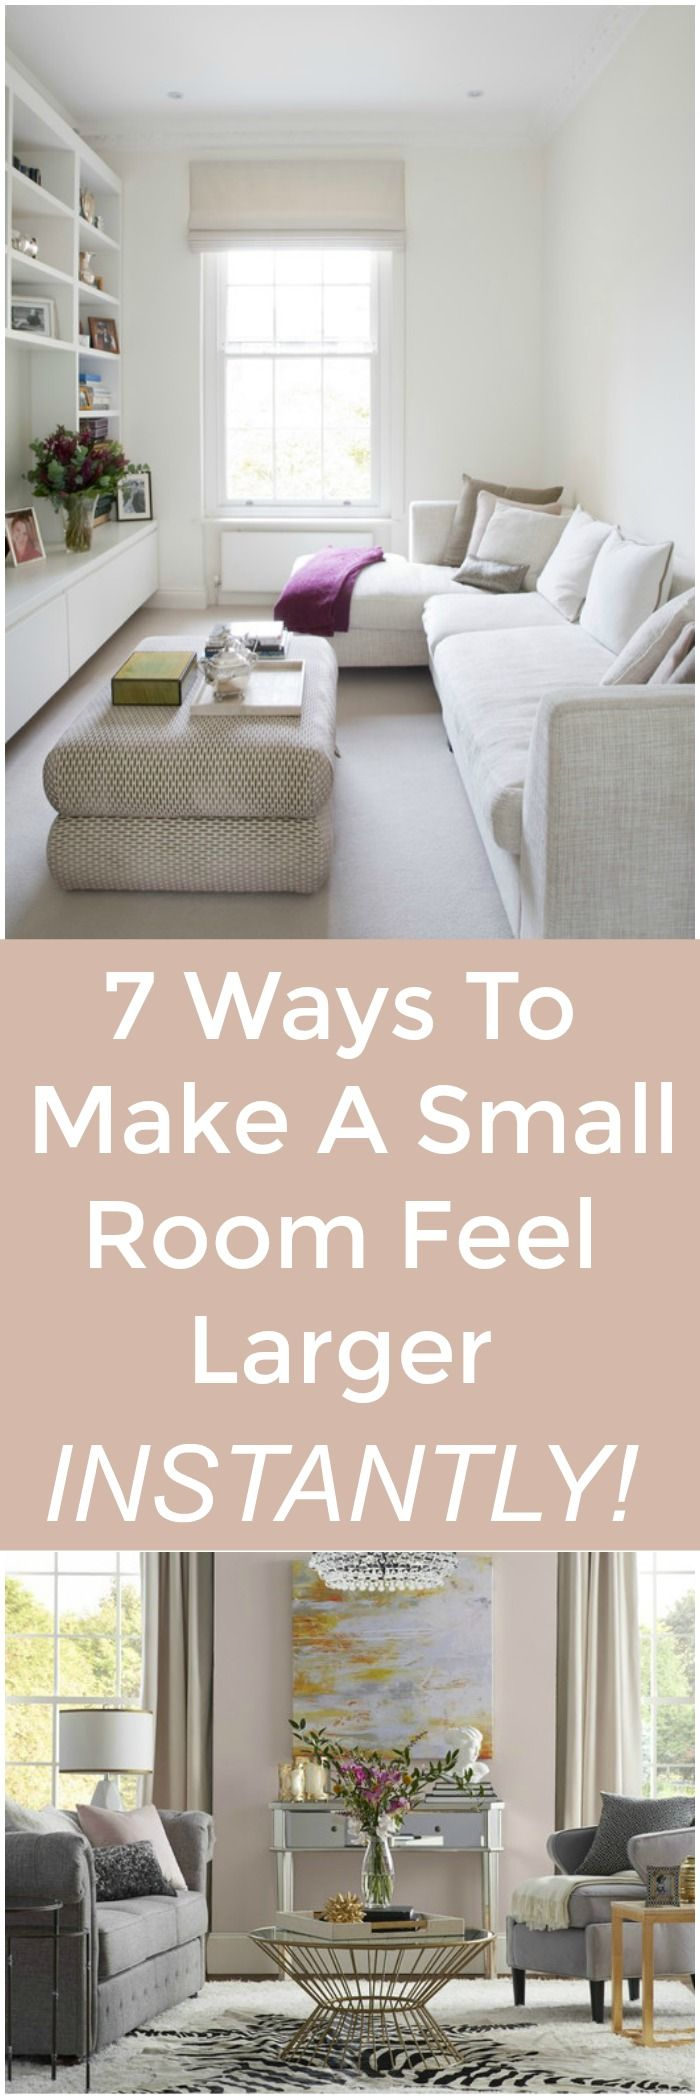 best 25 painting small rooms ideas on pinterest small bathroom 7 ways to make a small room feel larger instantly